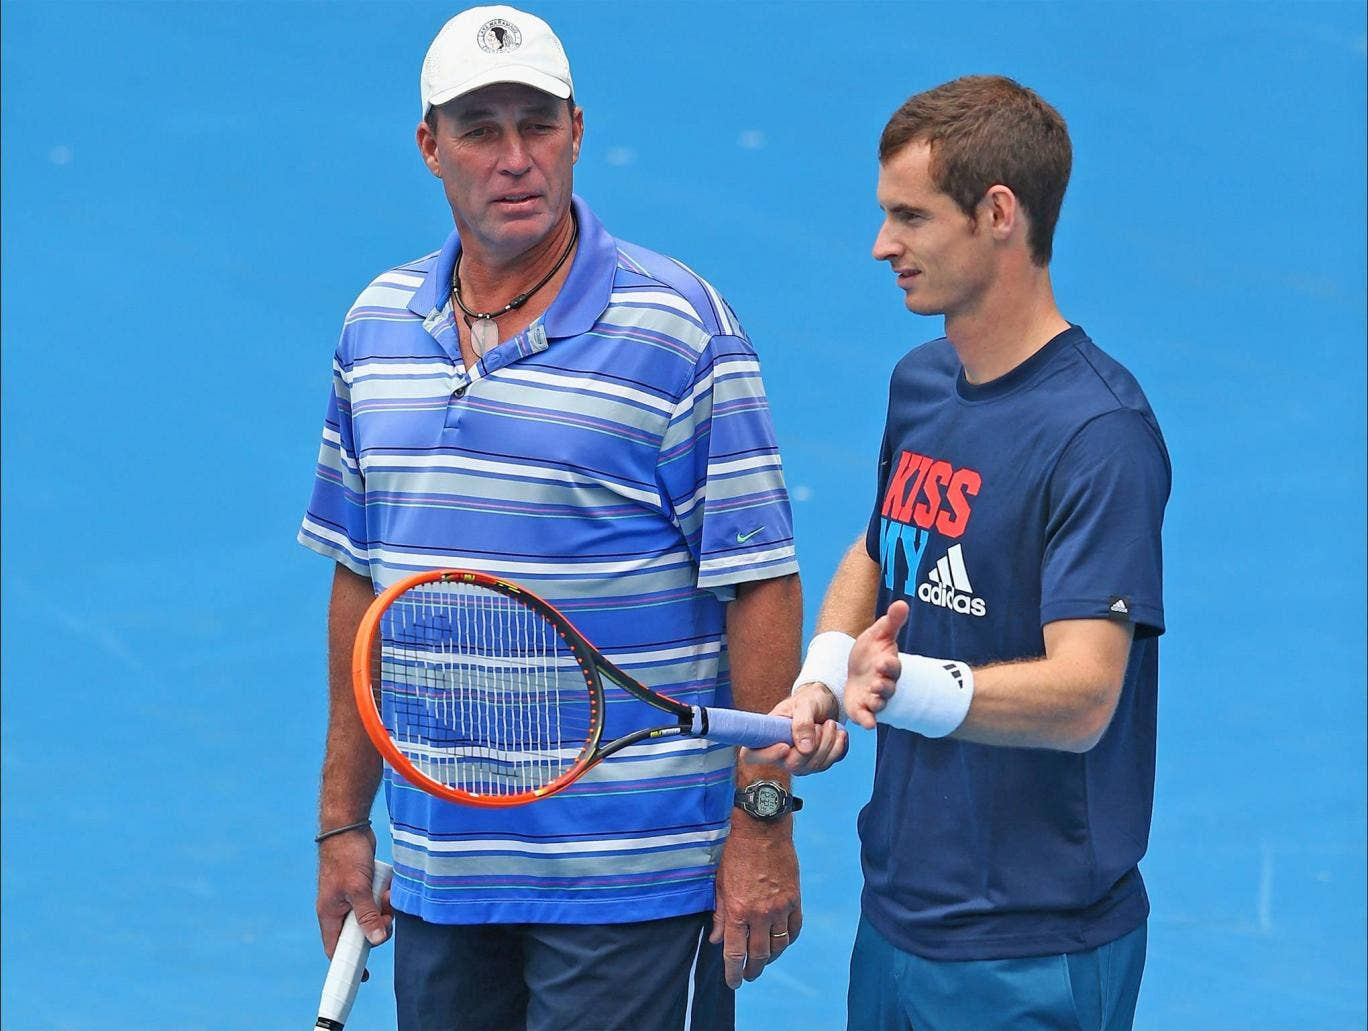 Andy Murray and Ivan Lendl confer during practice before this year's Australian Open